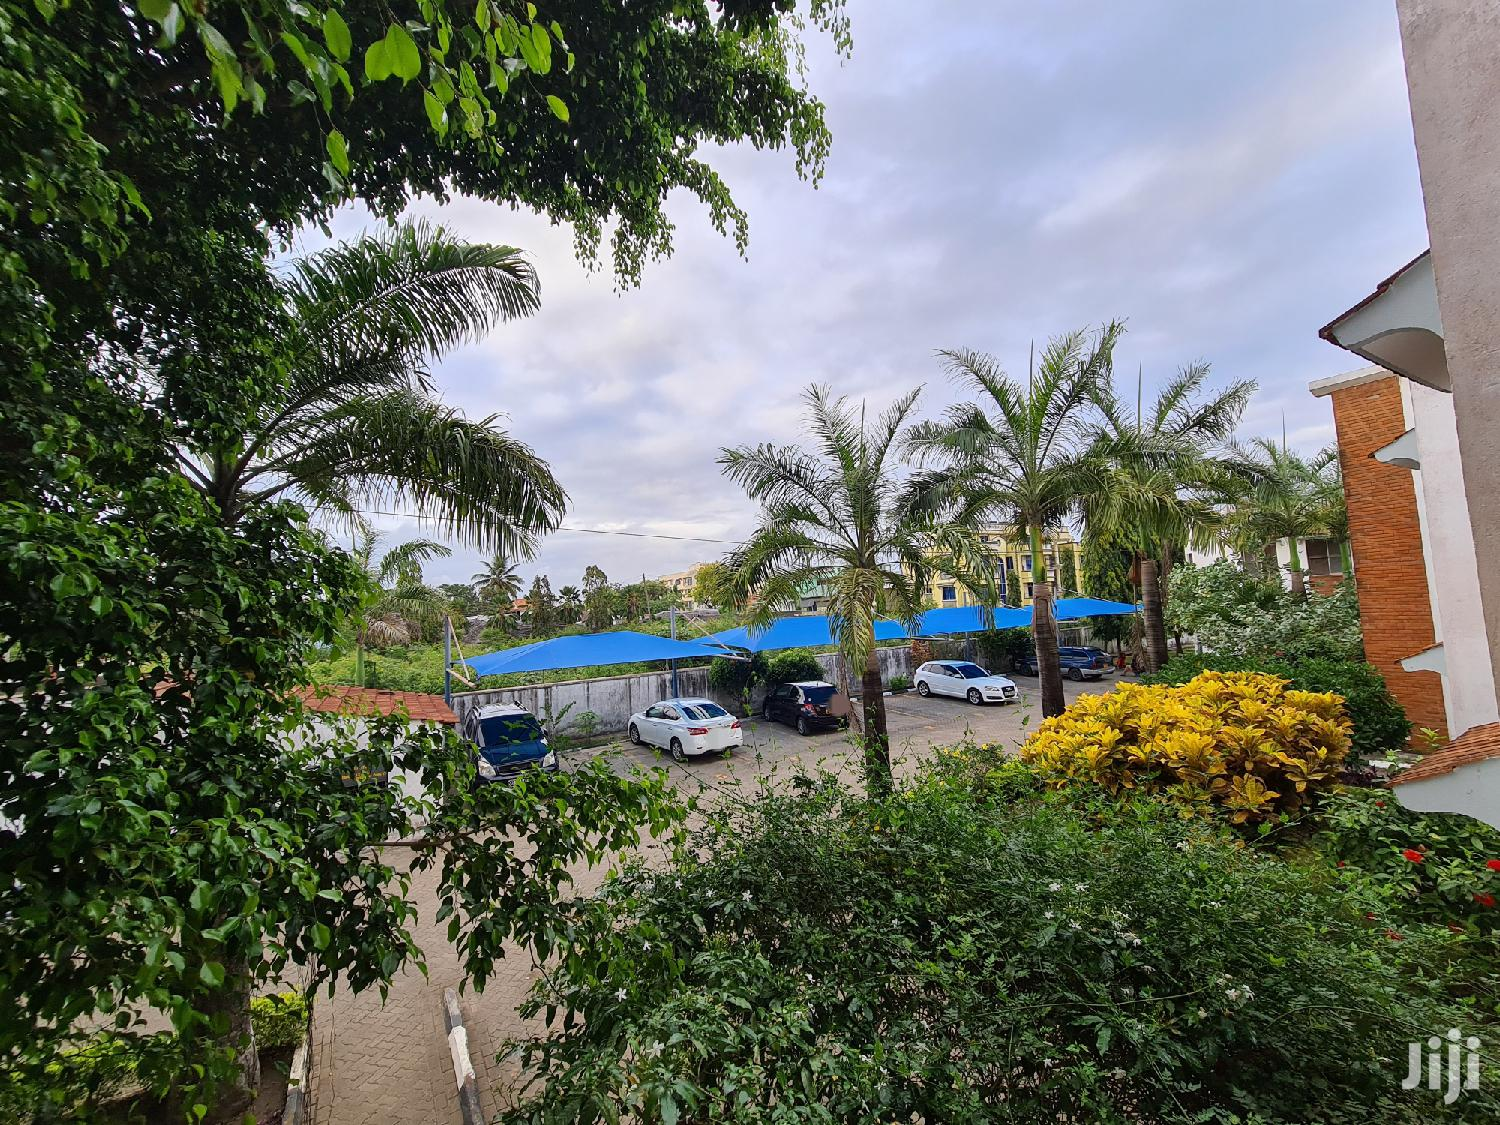 Dazzling Beautiful 3 Bedroom Apartment For Rent In Nyali. | Houses & Apartments For Rent for sale in Nyali, Mombasa, Kenya